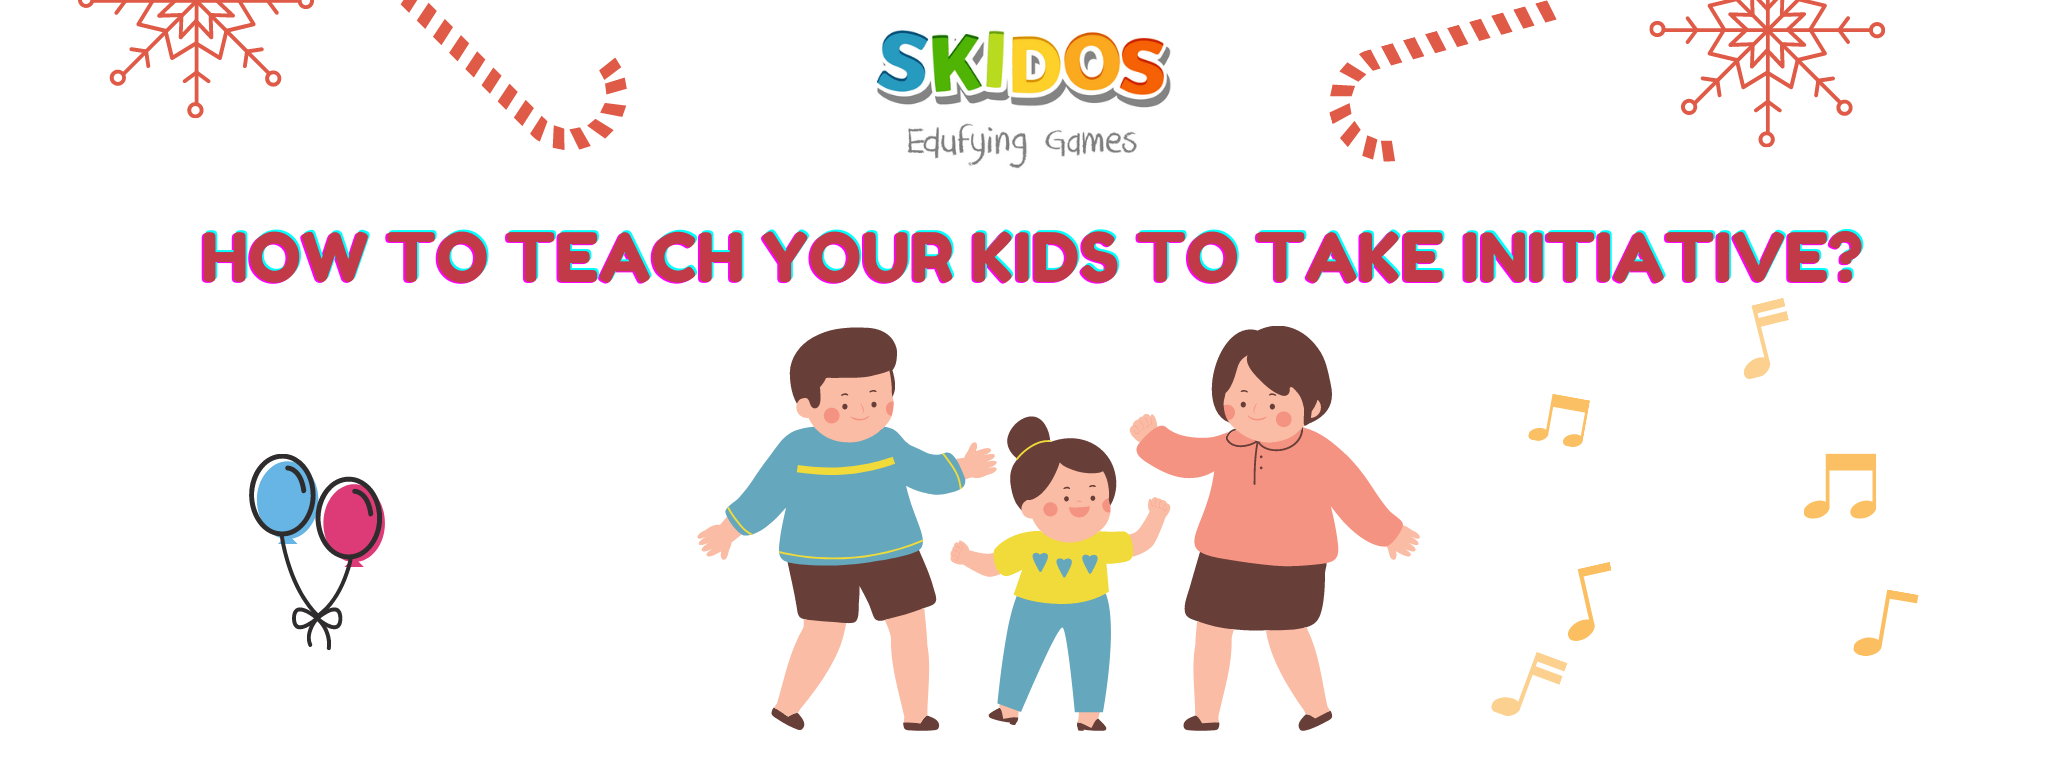 How to teach your kids to take initiative